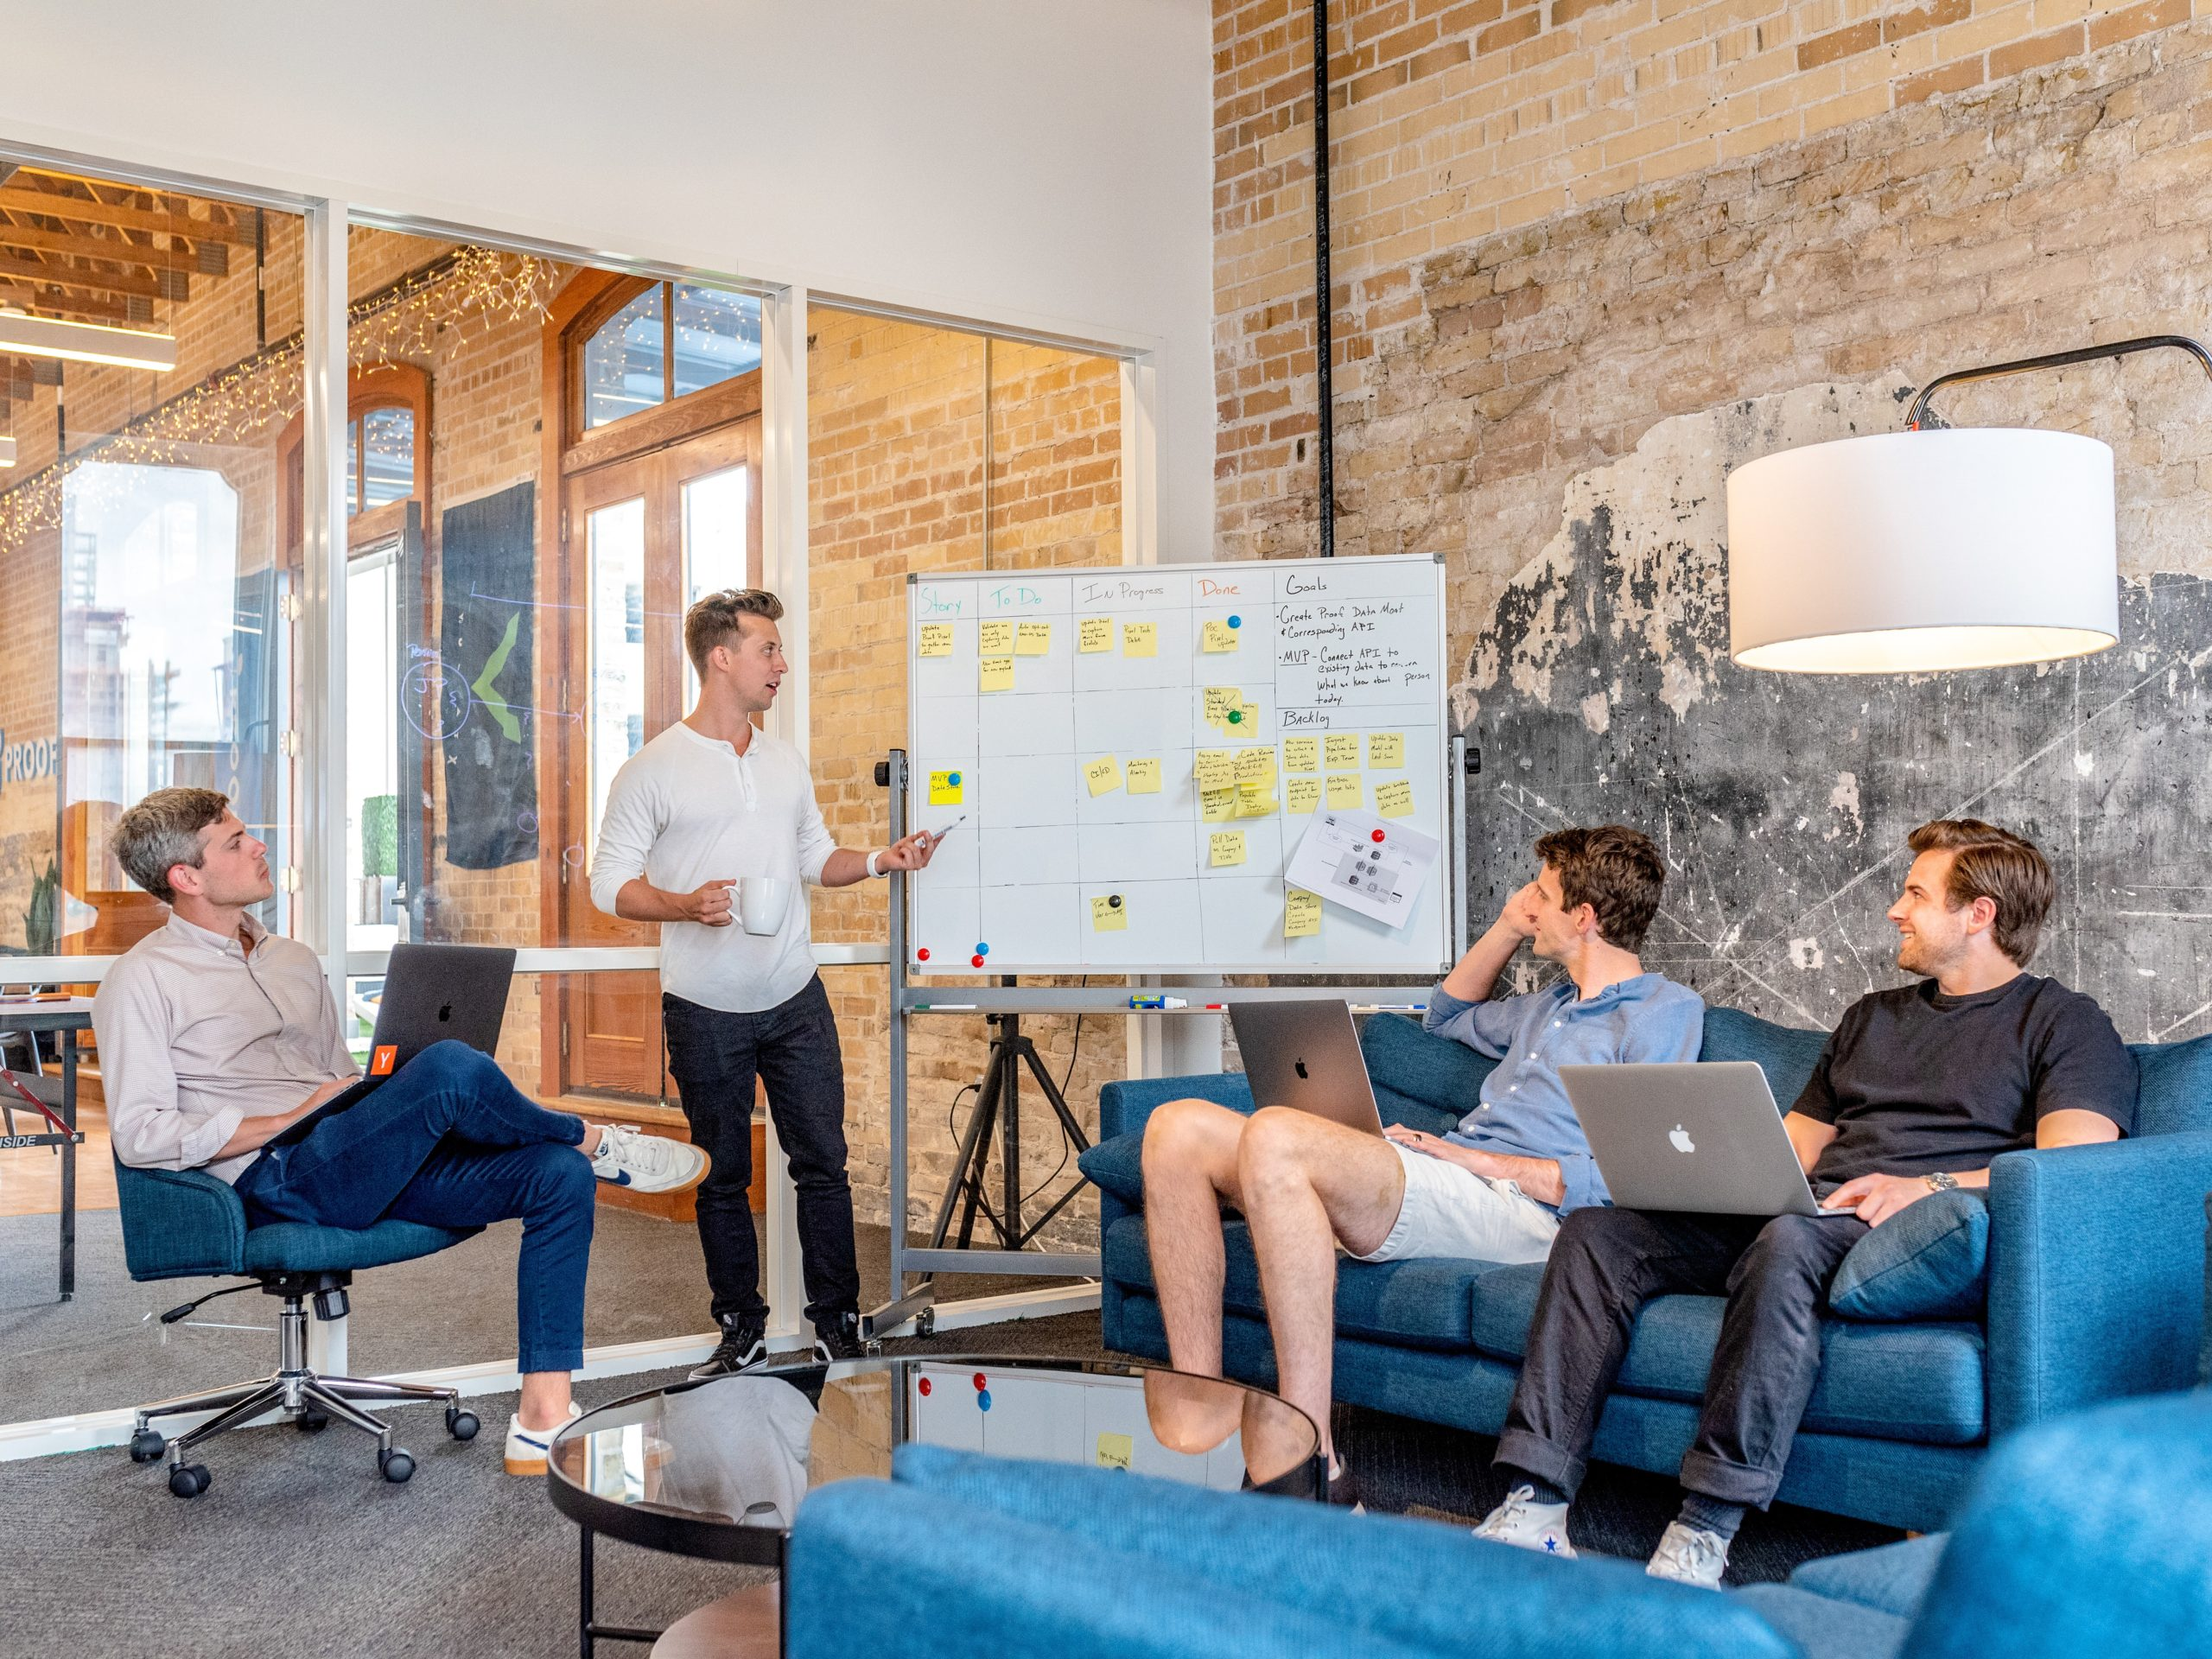 four coworkers in a meeting with a board filled with ideas